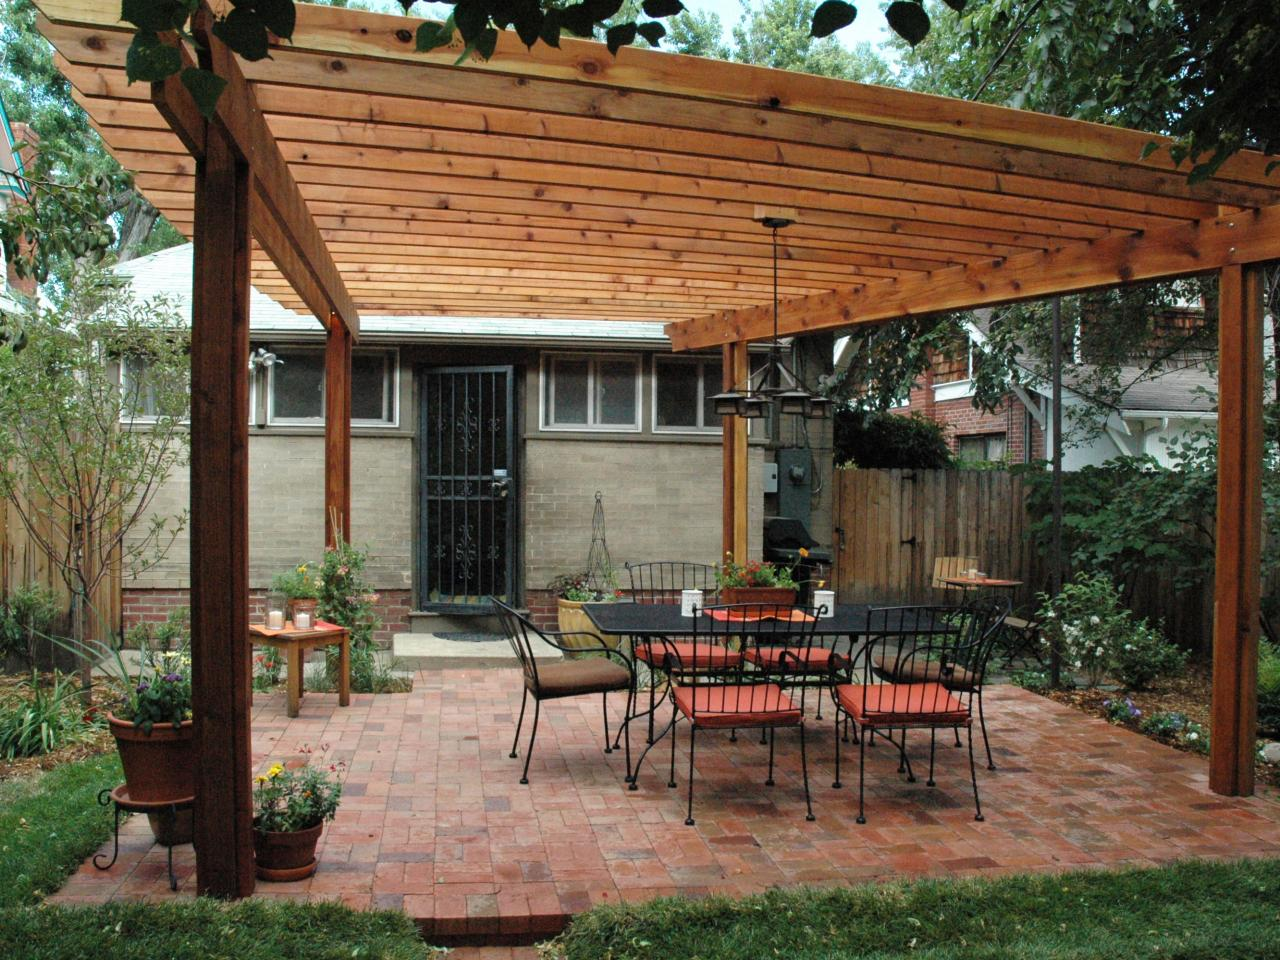 Arbor Installation-Victoria TX Professional Landscapers & Outdoor Living Designs-We offer Landscape Design, Outdoor Patios & Pergolas, Outdoor Living Spaces, Stonescapes, Residential & Commercial Landscaping, Irrigation Installation & Repairs, Drainage Systems, Landscape Lighting, Outdoor Living Spaces, Tree Service, Lawn Service, and more.